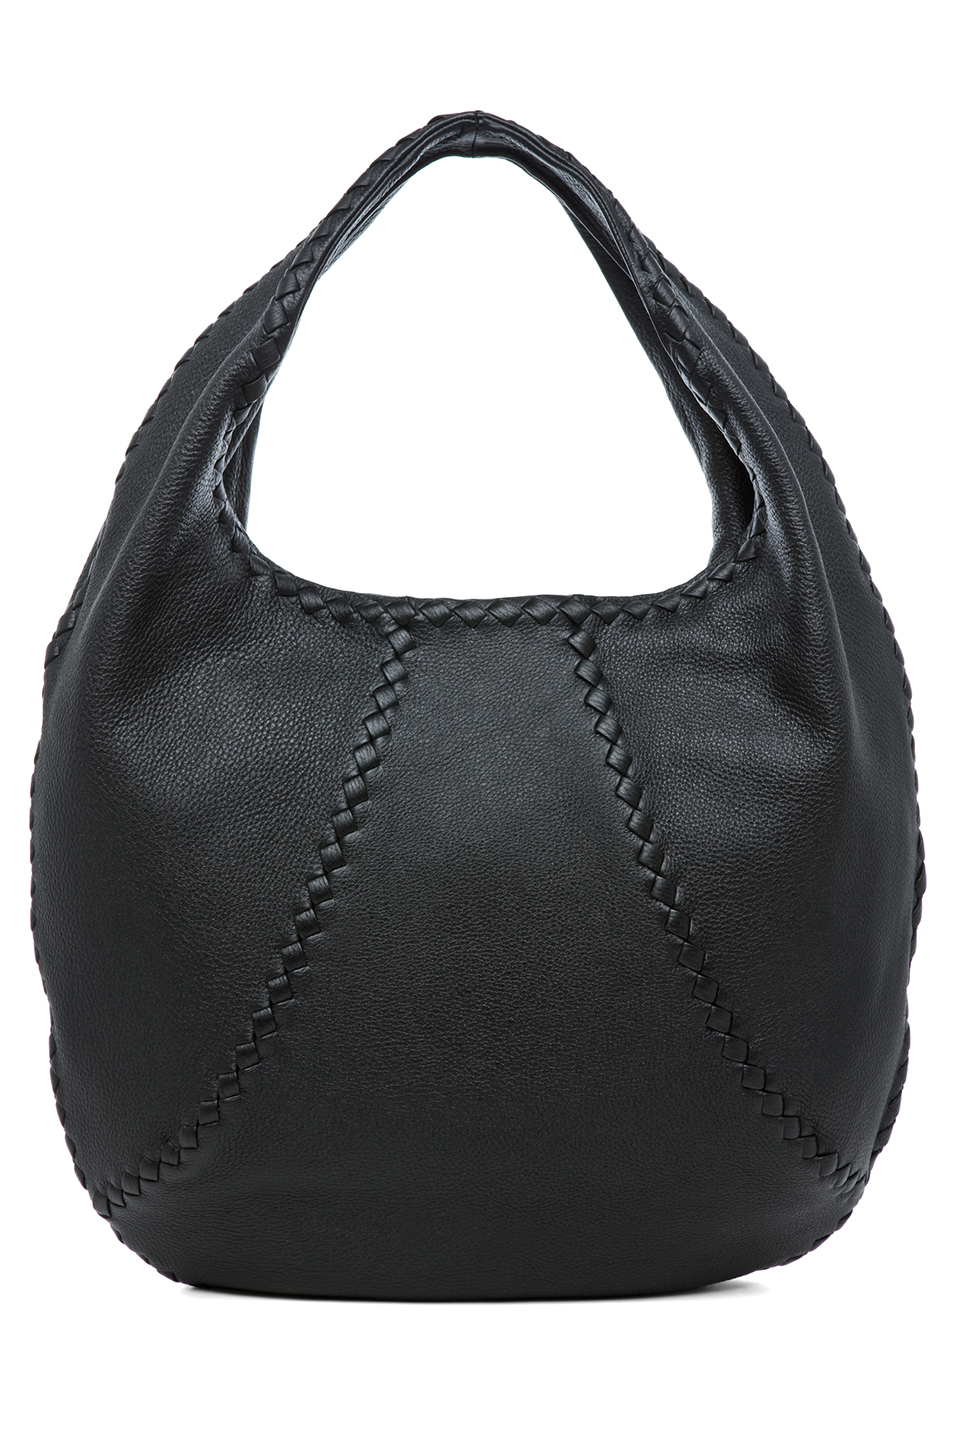 Bottega Veneta | Hobo Bag in Black